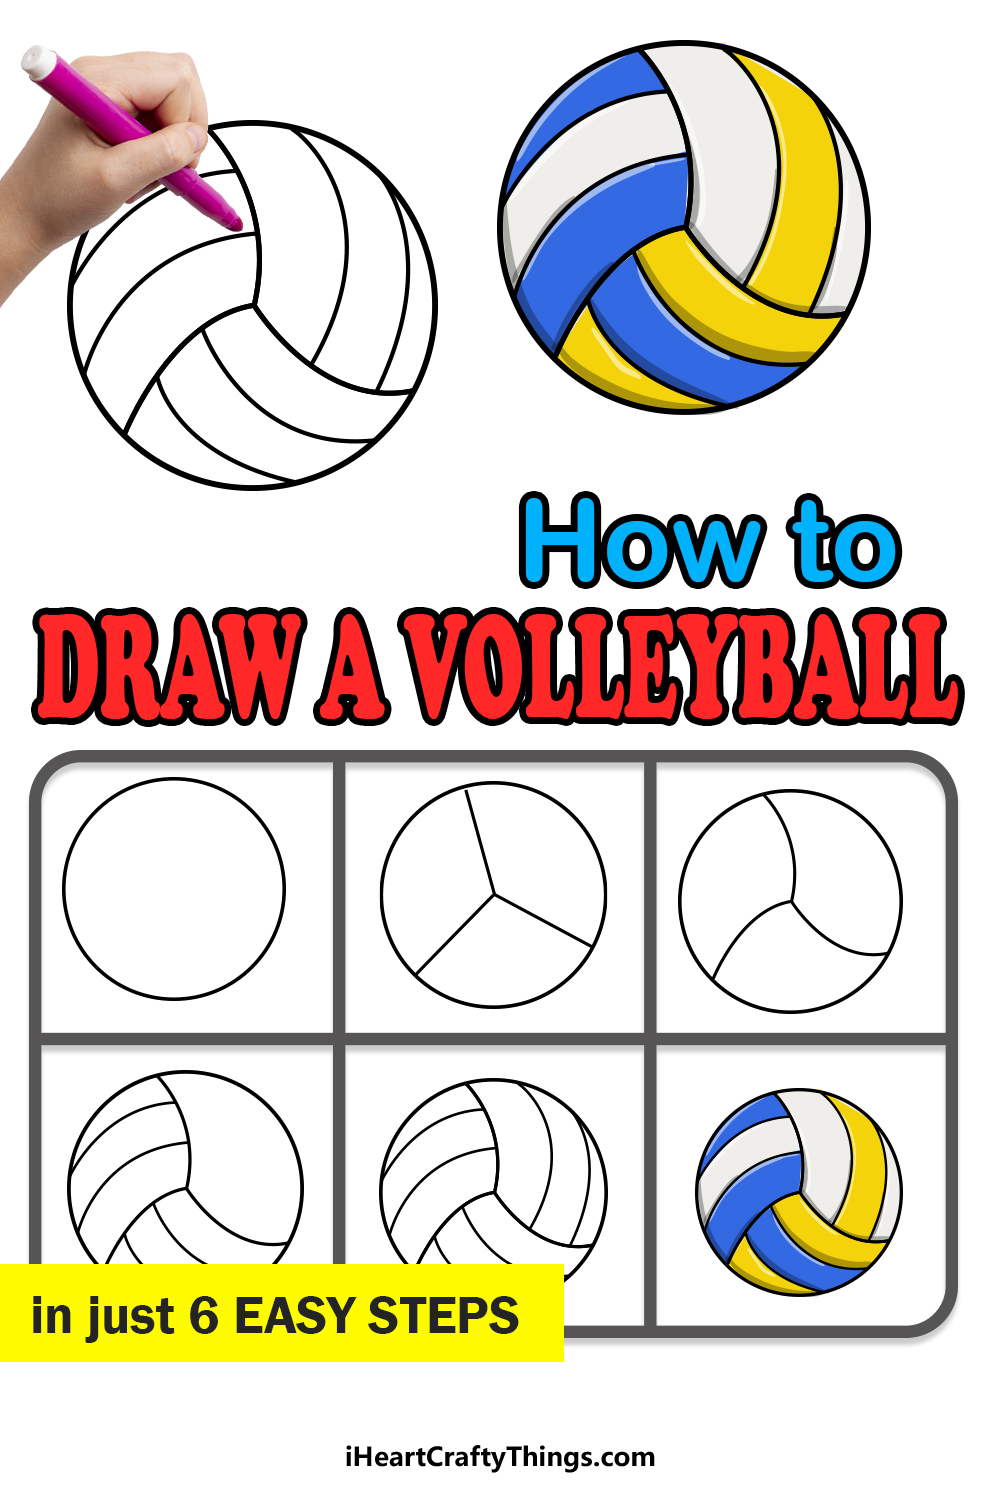 how to draw a volleyball in 6 easy steps